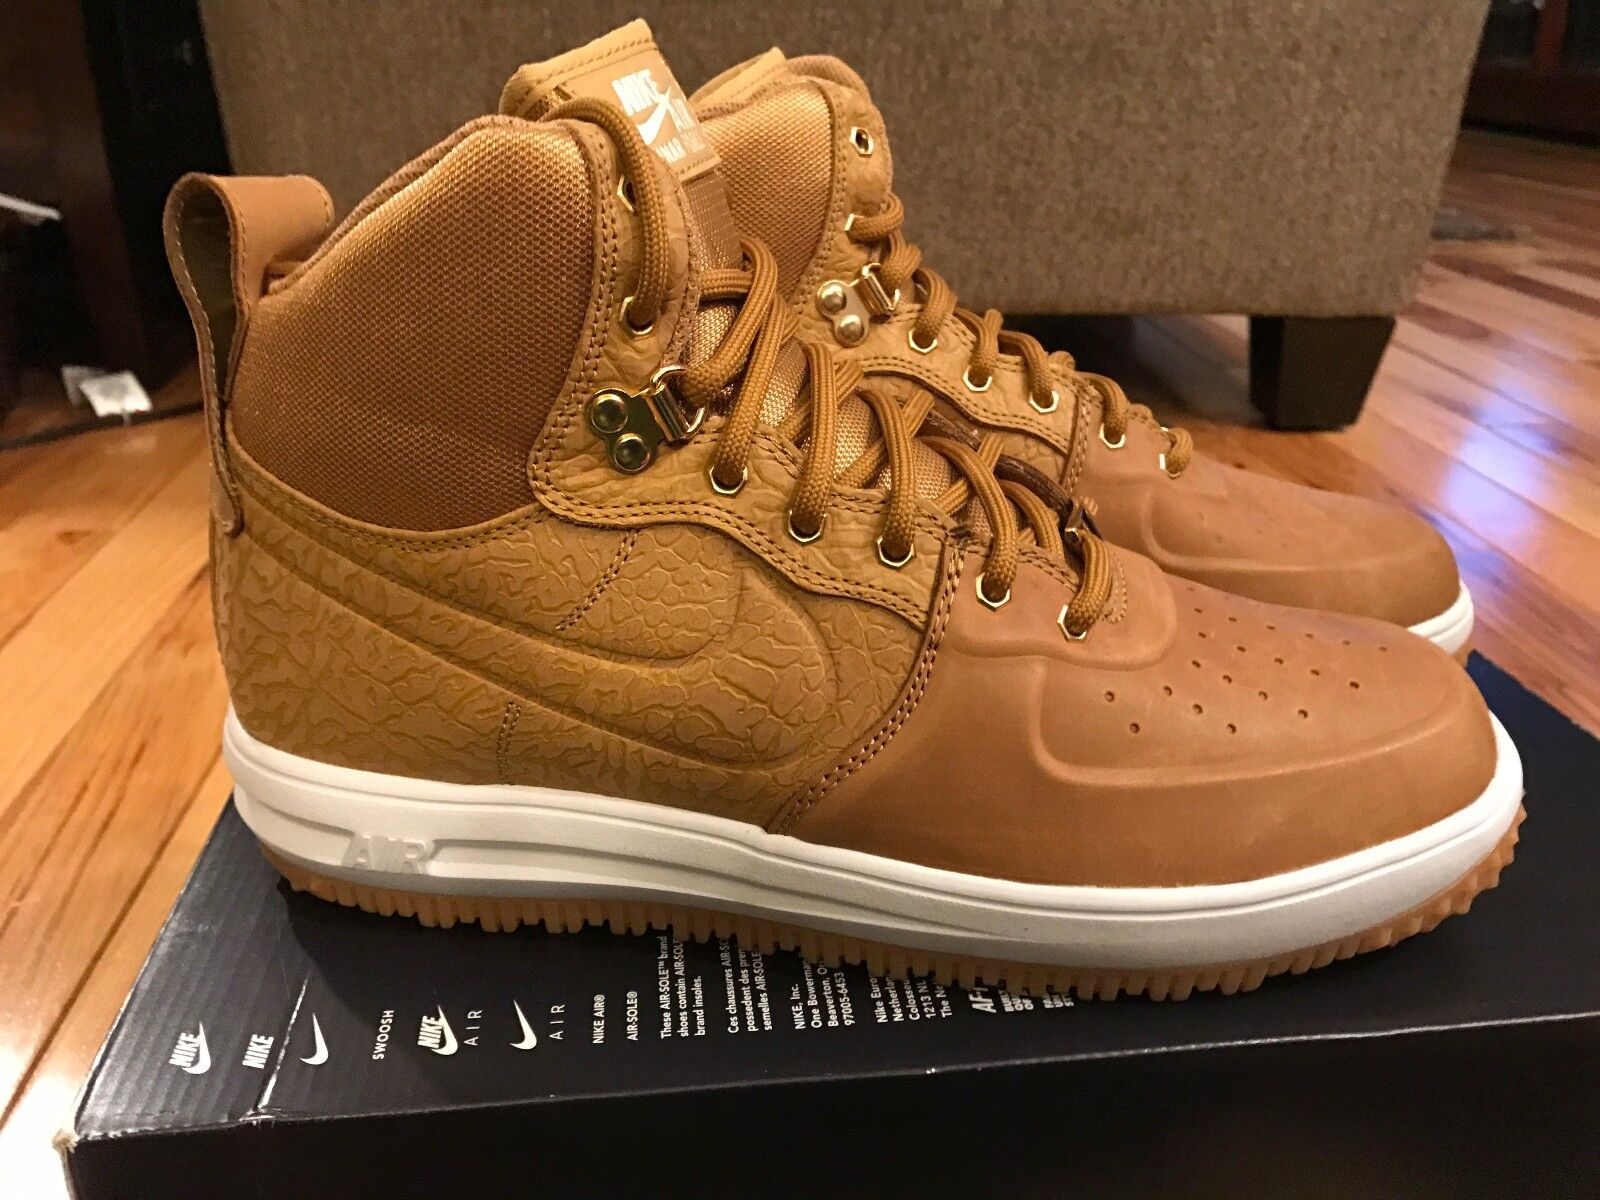 Nike Lunar Force 1 Sneakerboot Wheat Gold White 654481-700 Size 8